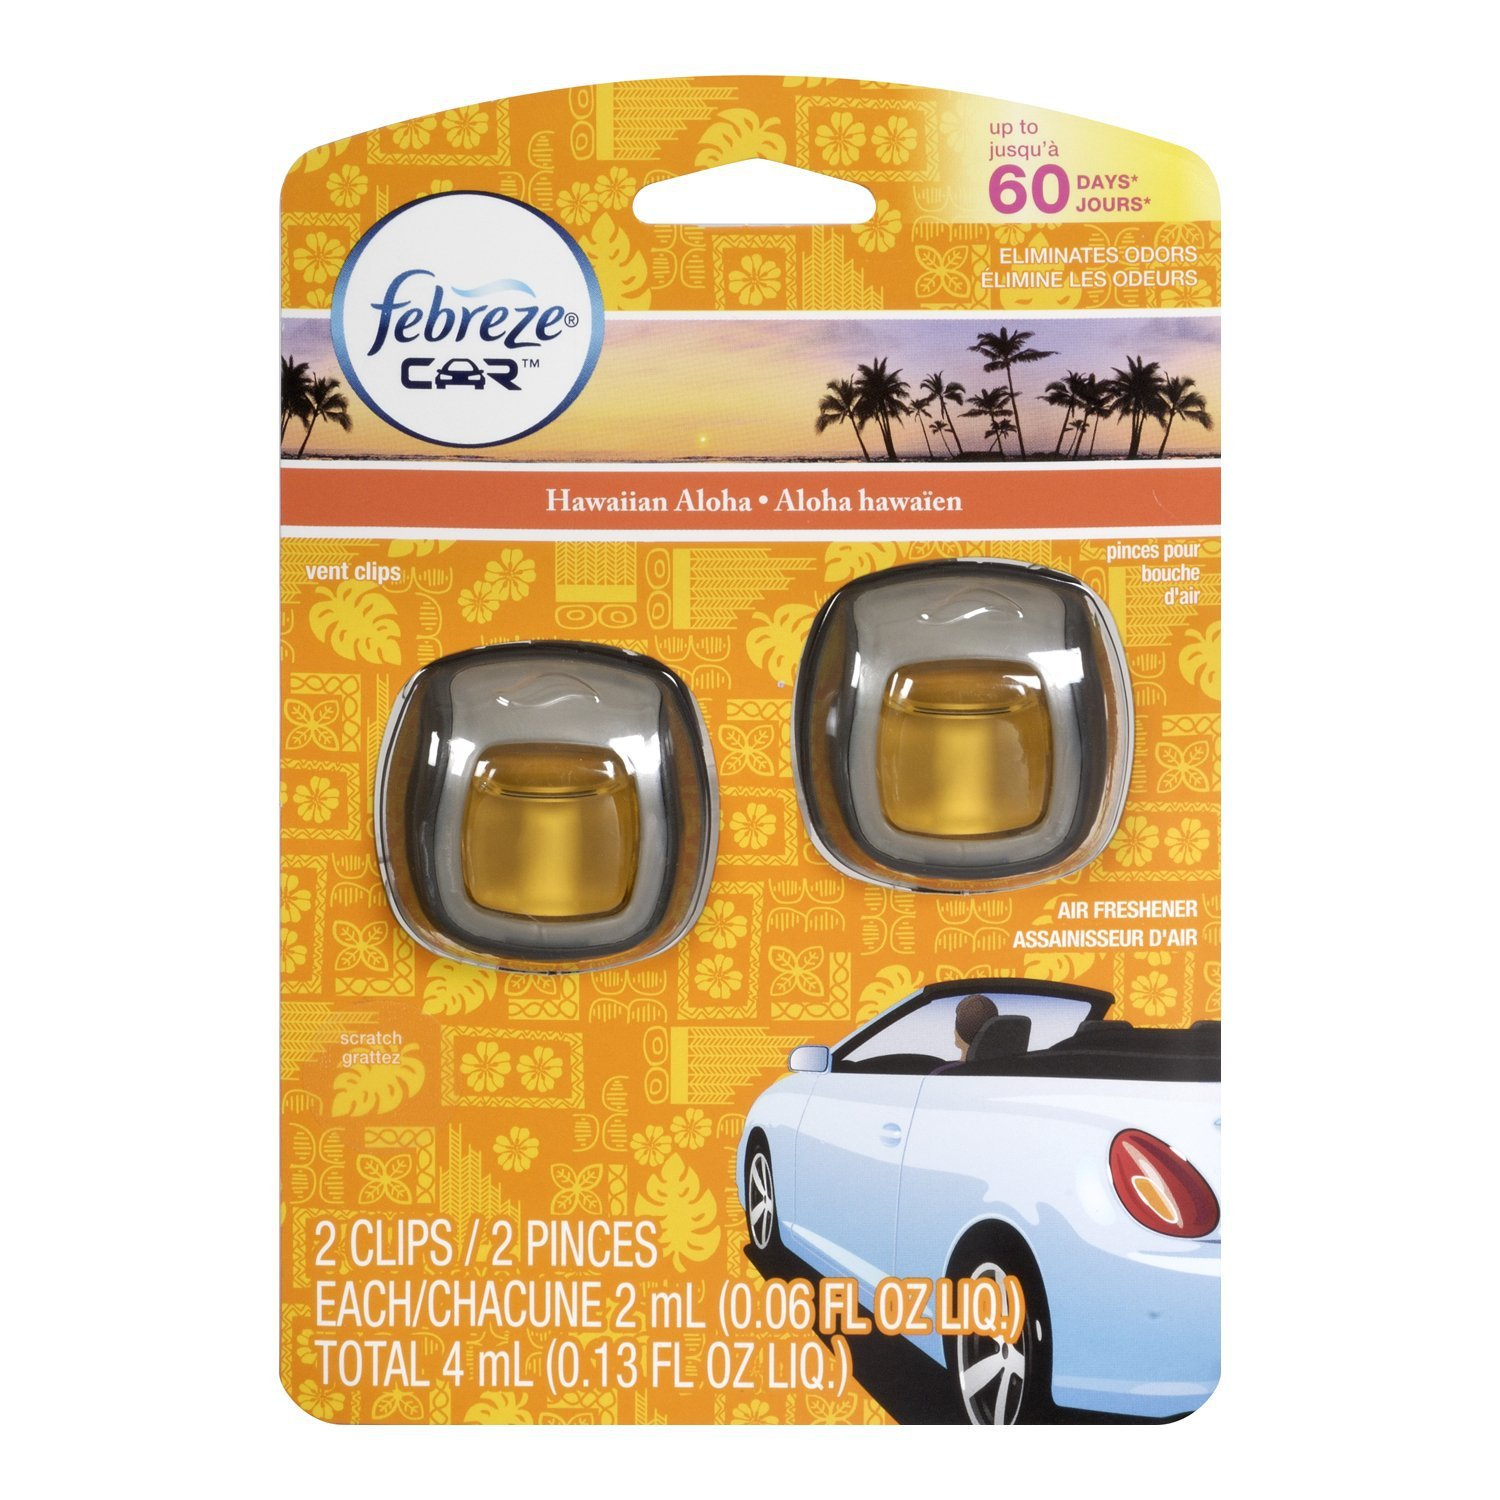 Febreze Car Vent Clips Air Freshener Odor Eliminator New: 2 Febreze Car Vent Clips, Air Freshener,Eliminates Odors